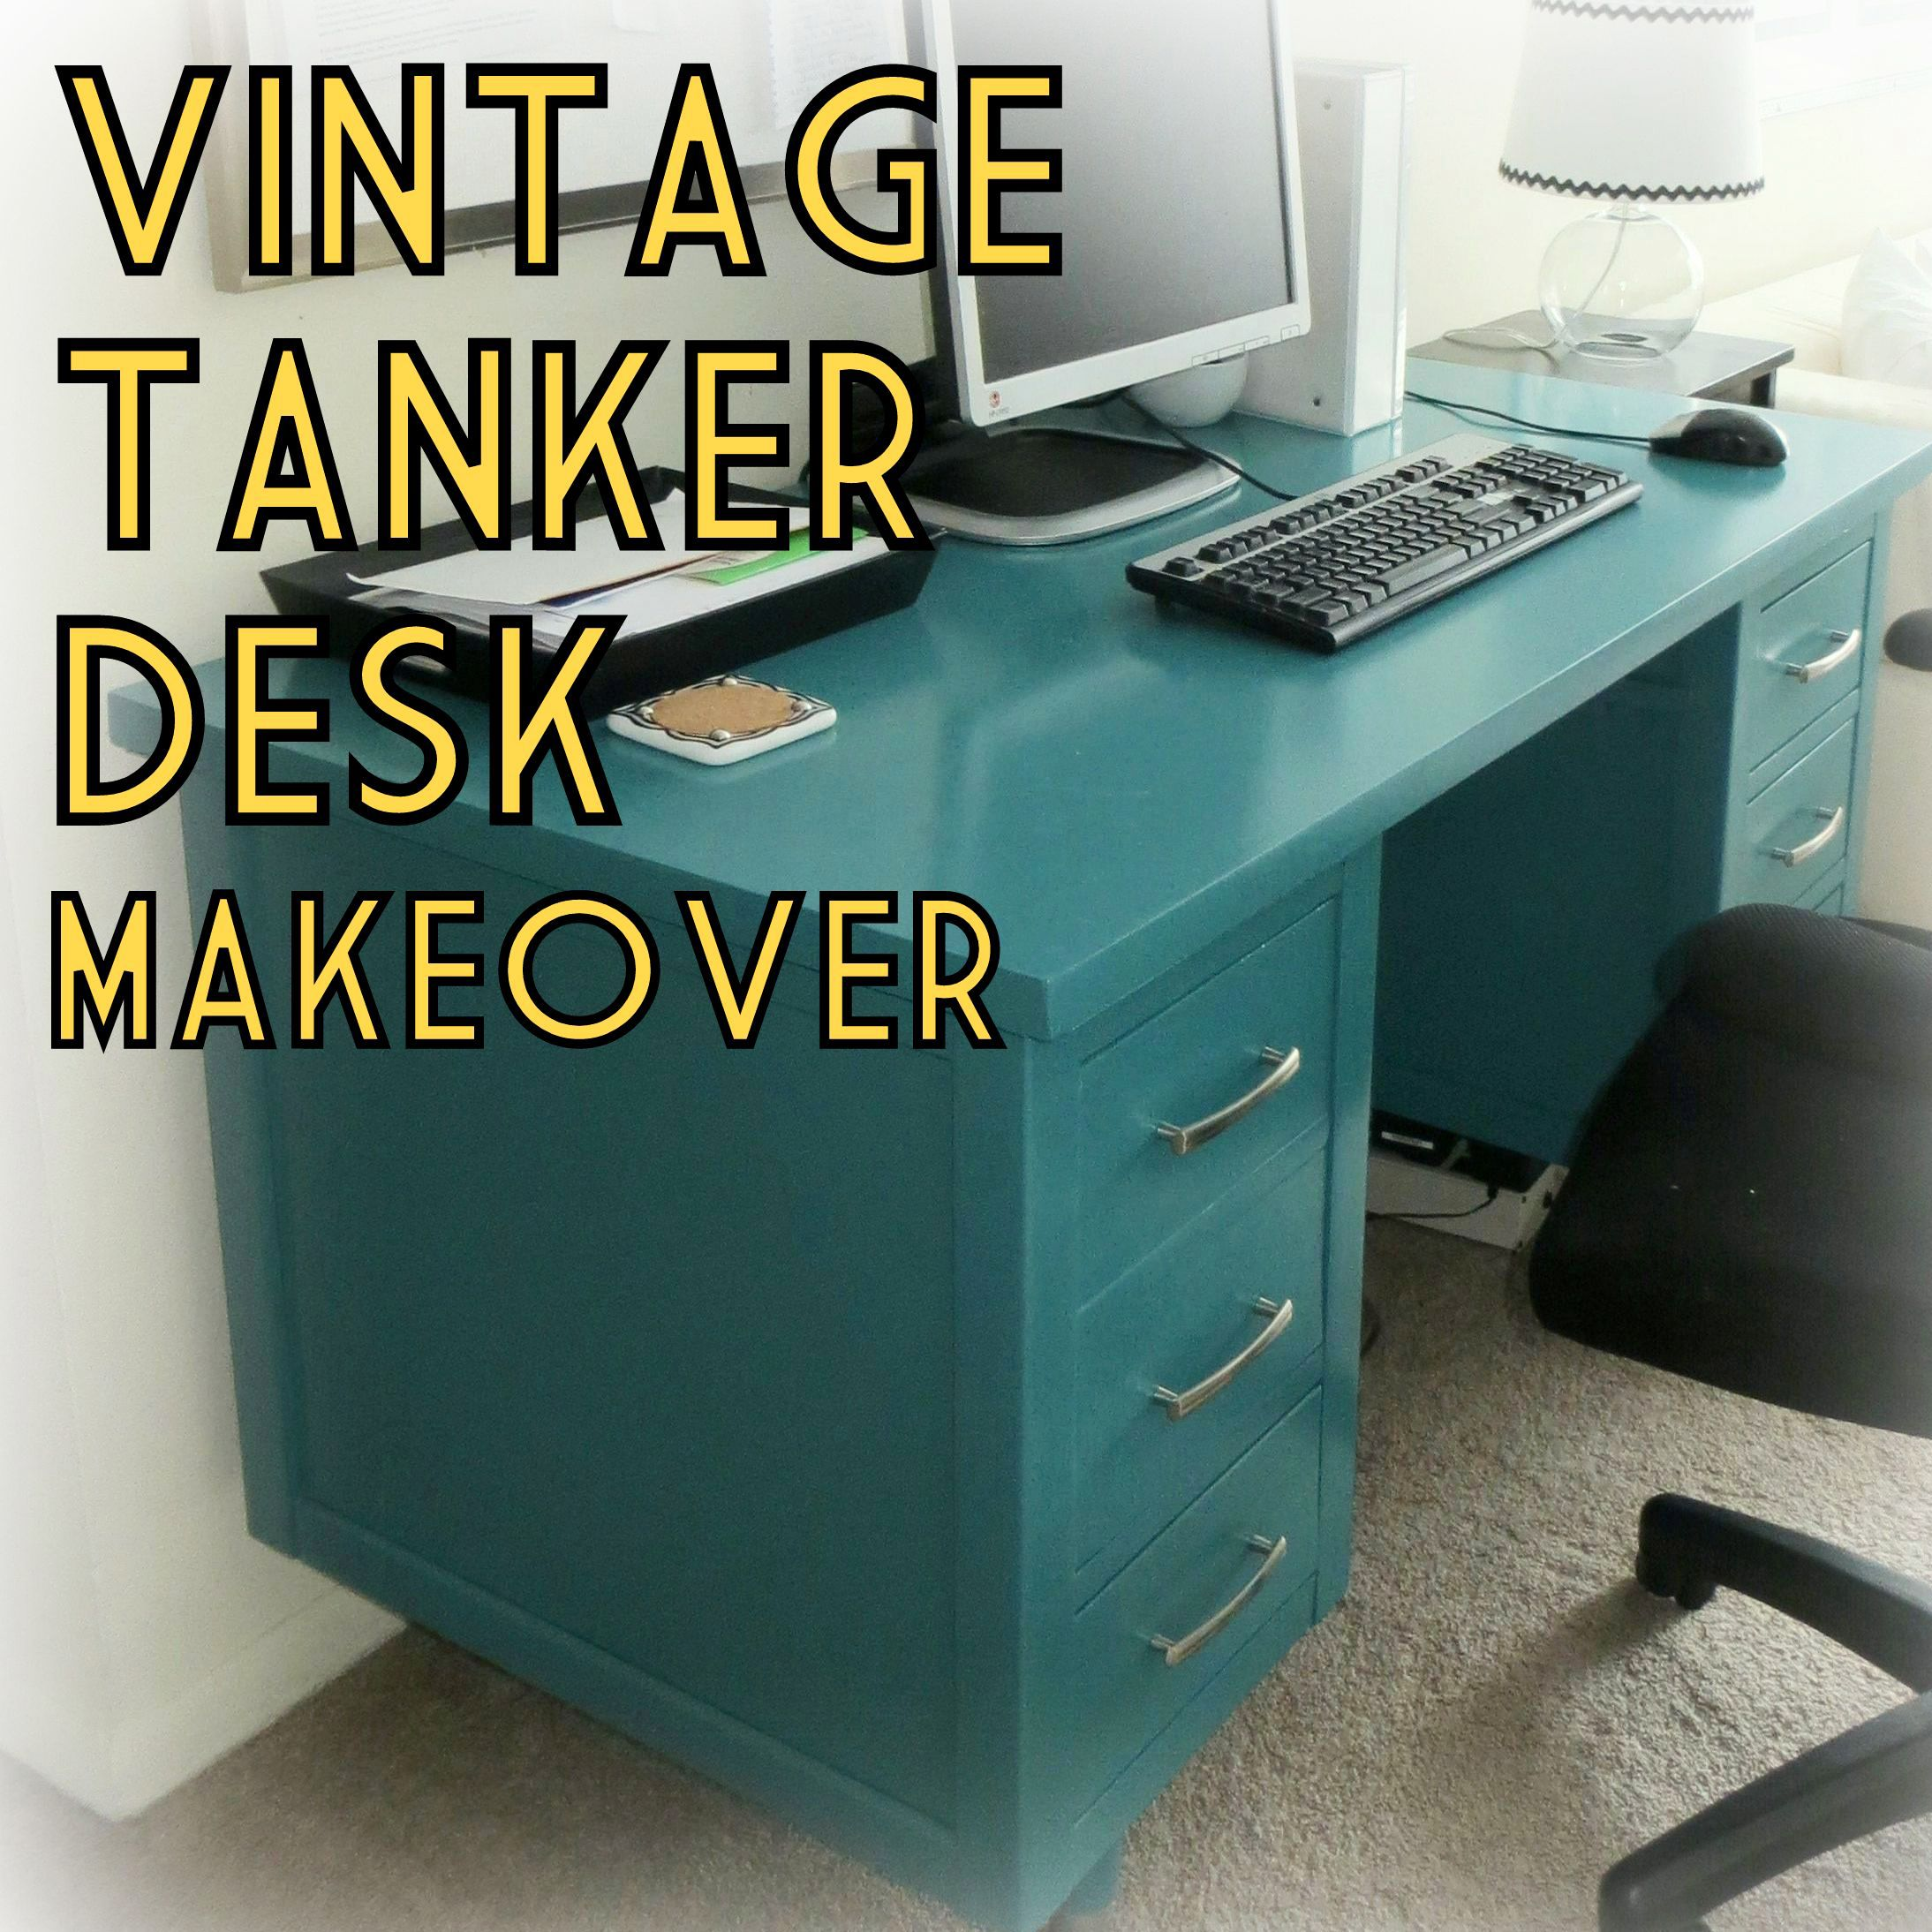 project and salvage youtube tanker desk watch restoration